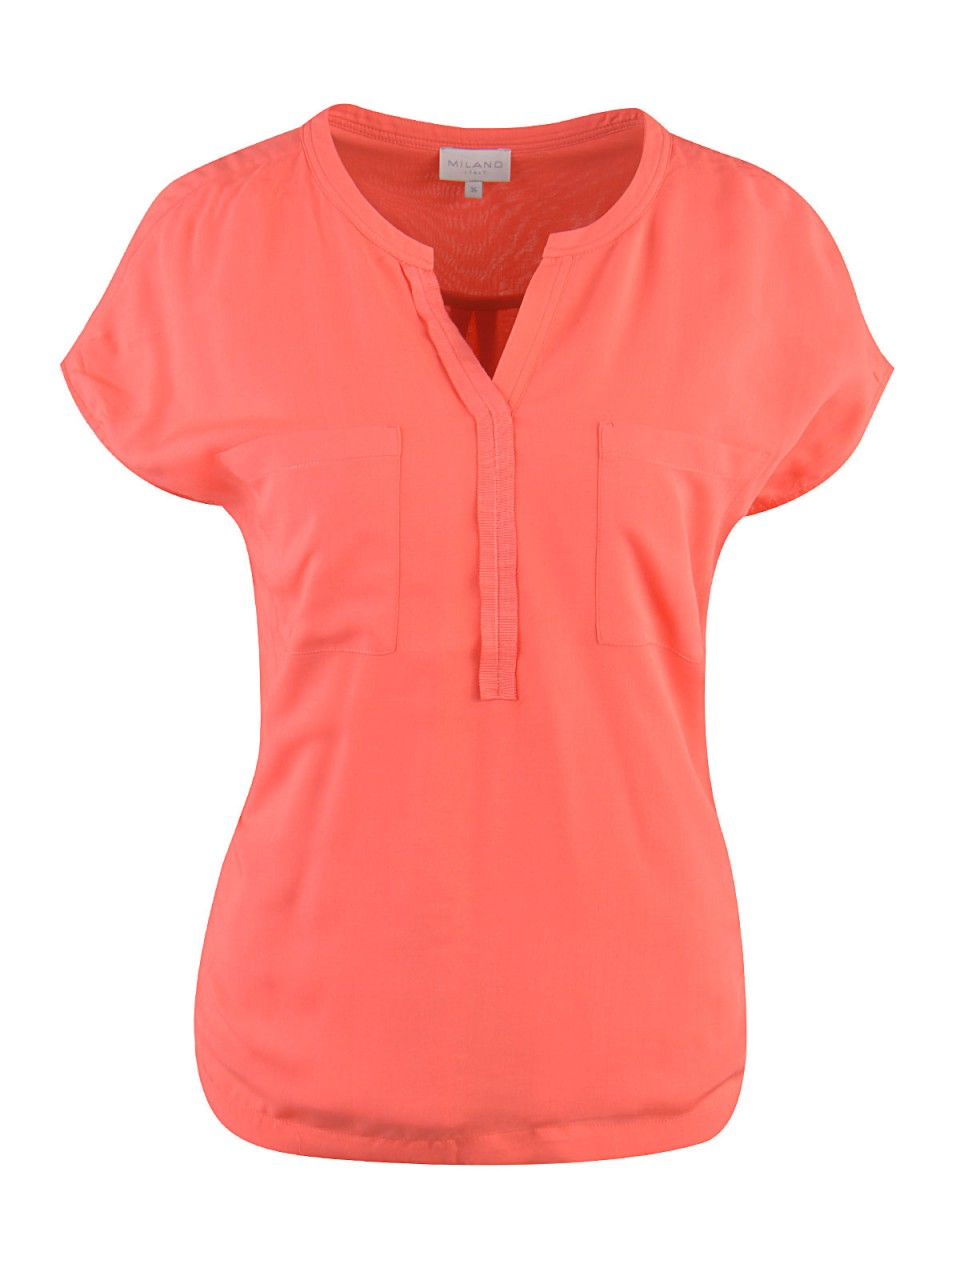 milano-italy-damen-bluse-orange